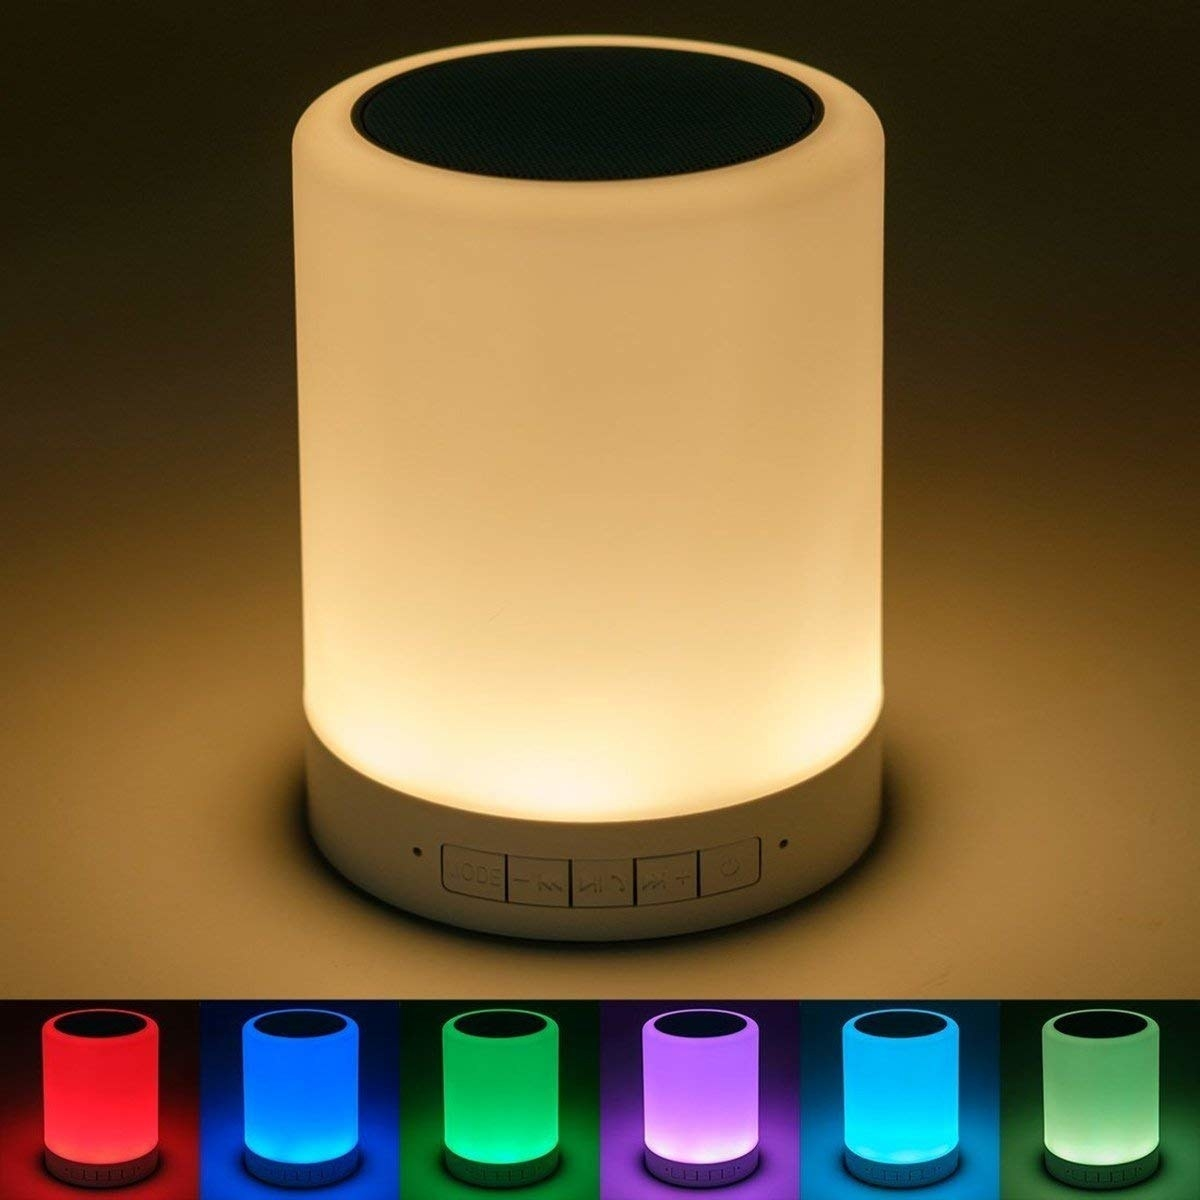 A bluetooth speaker and table lamp device, with different colour options displayed in a collage